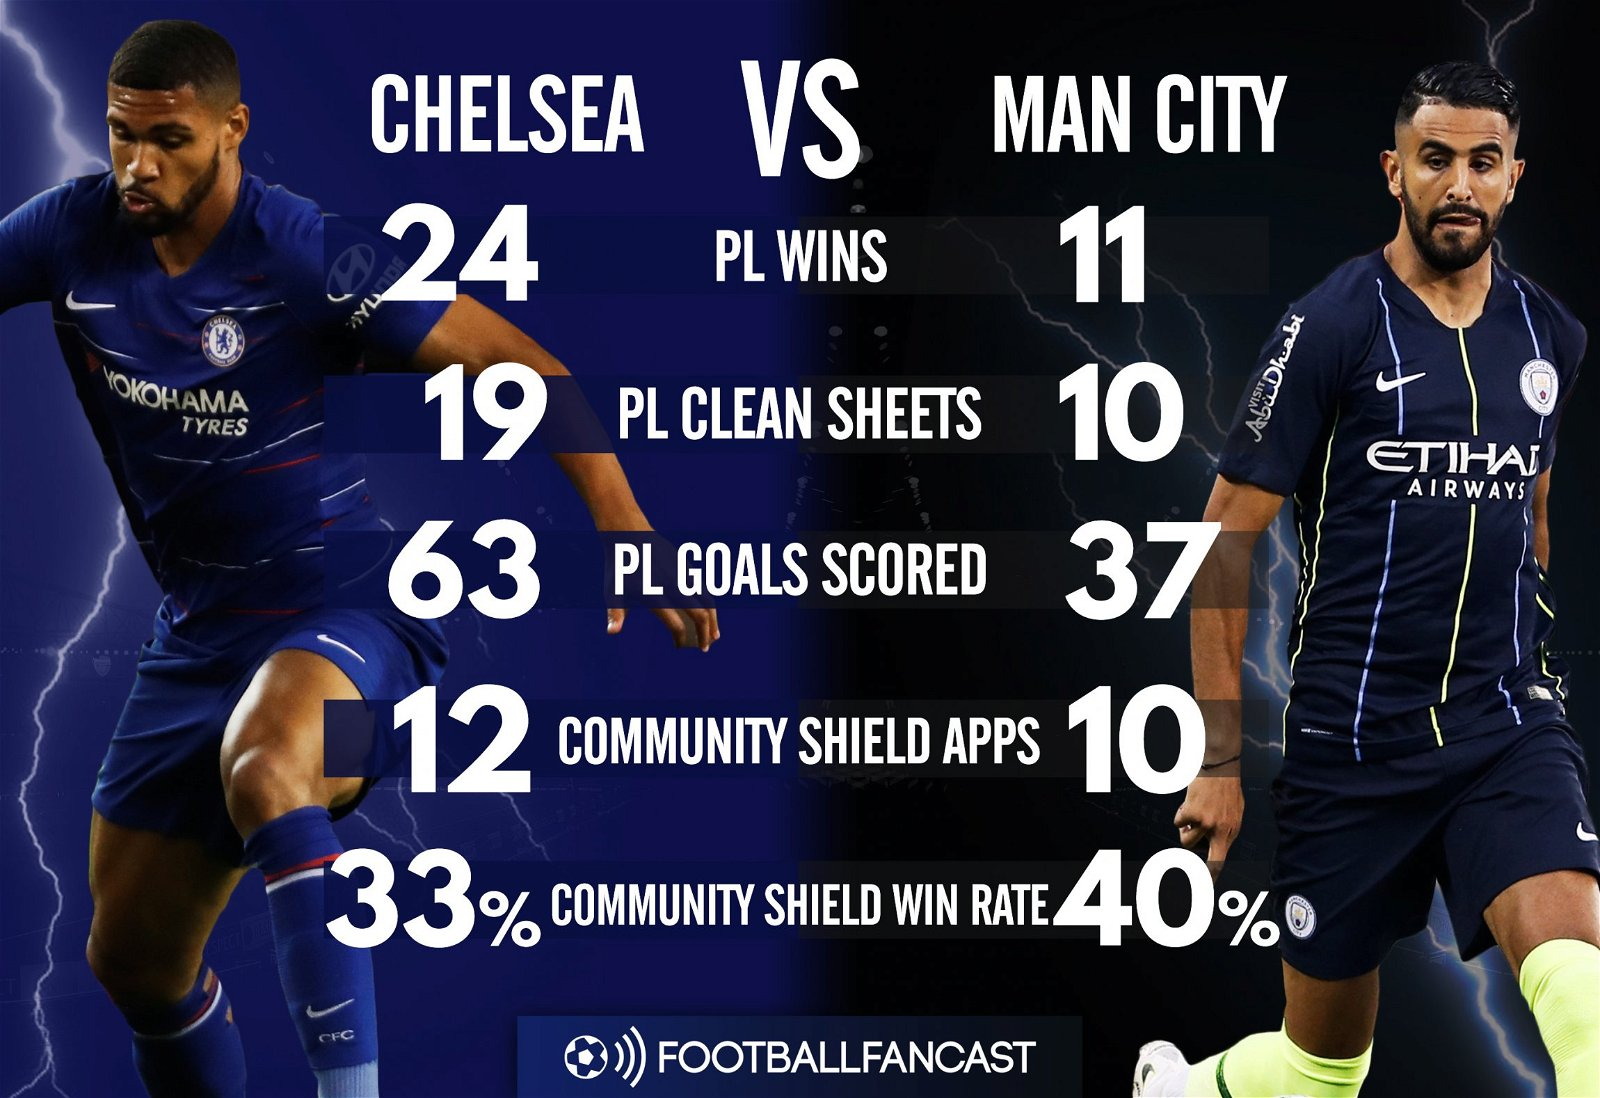 Chelsea vs Manchester City - Head-to-Head